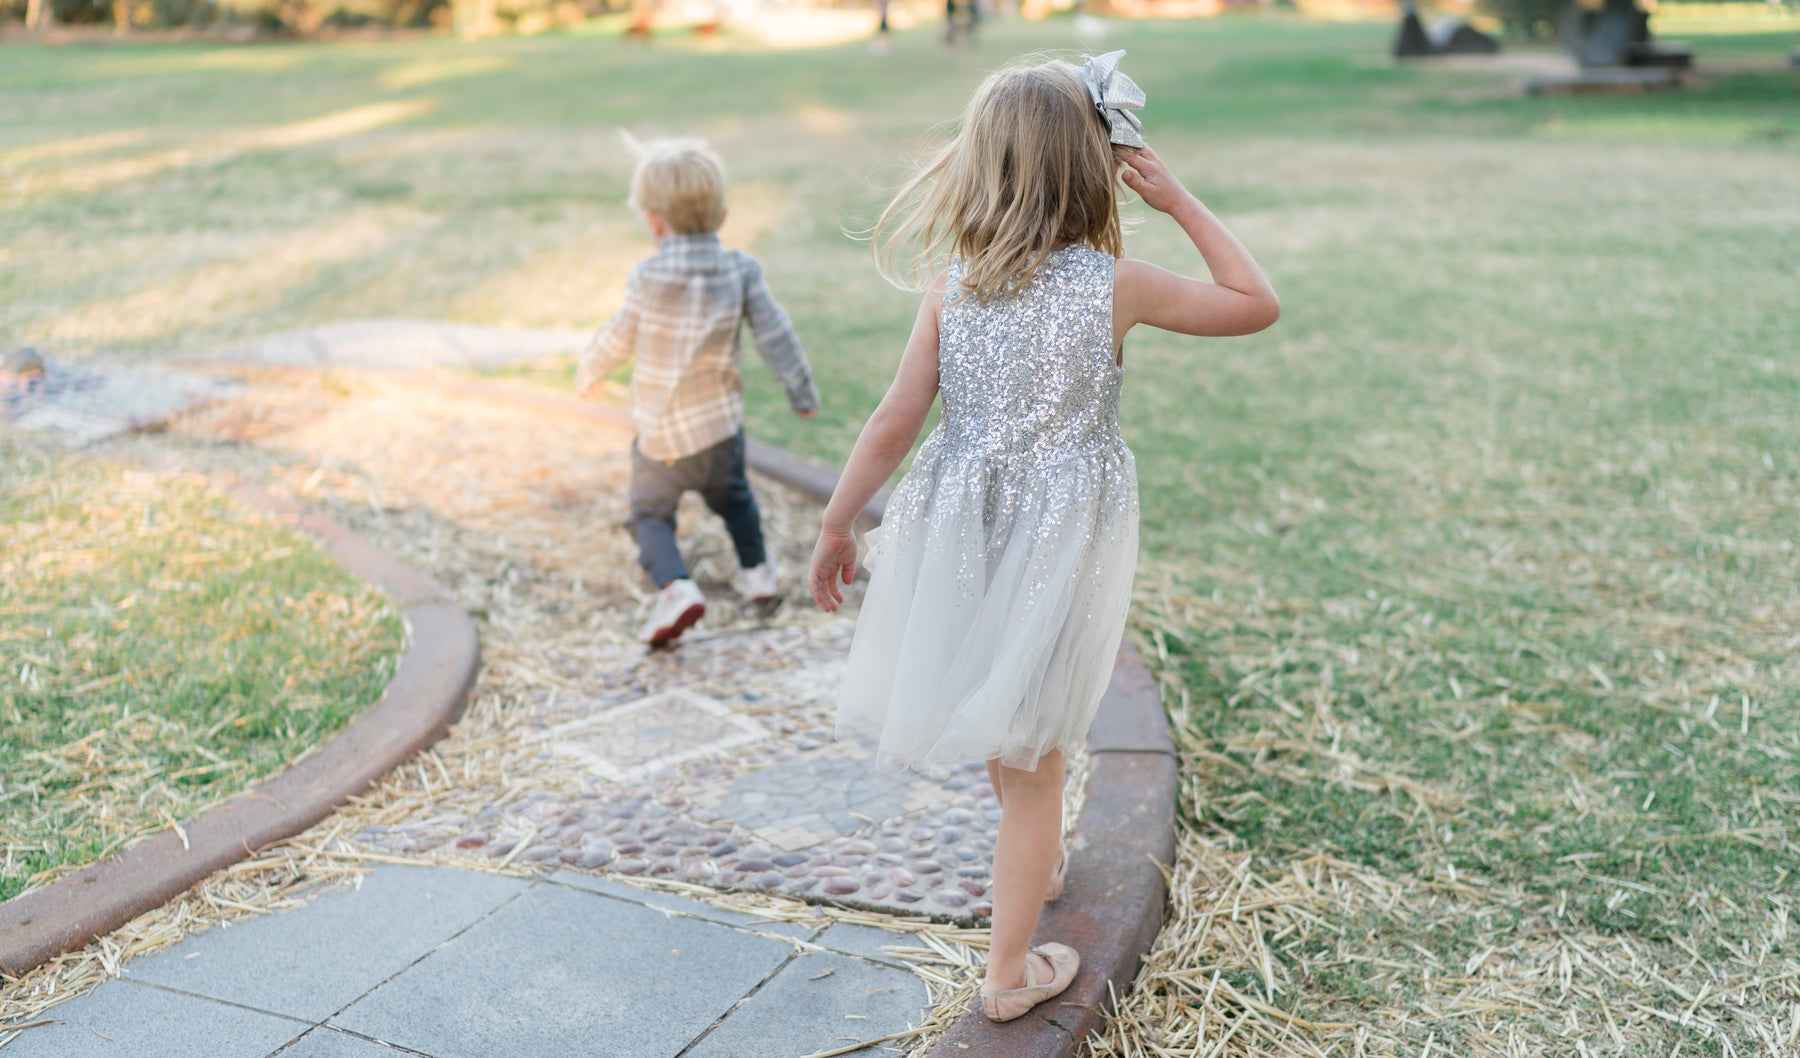 Two young kids walking away